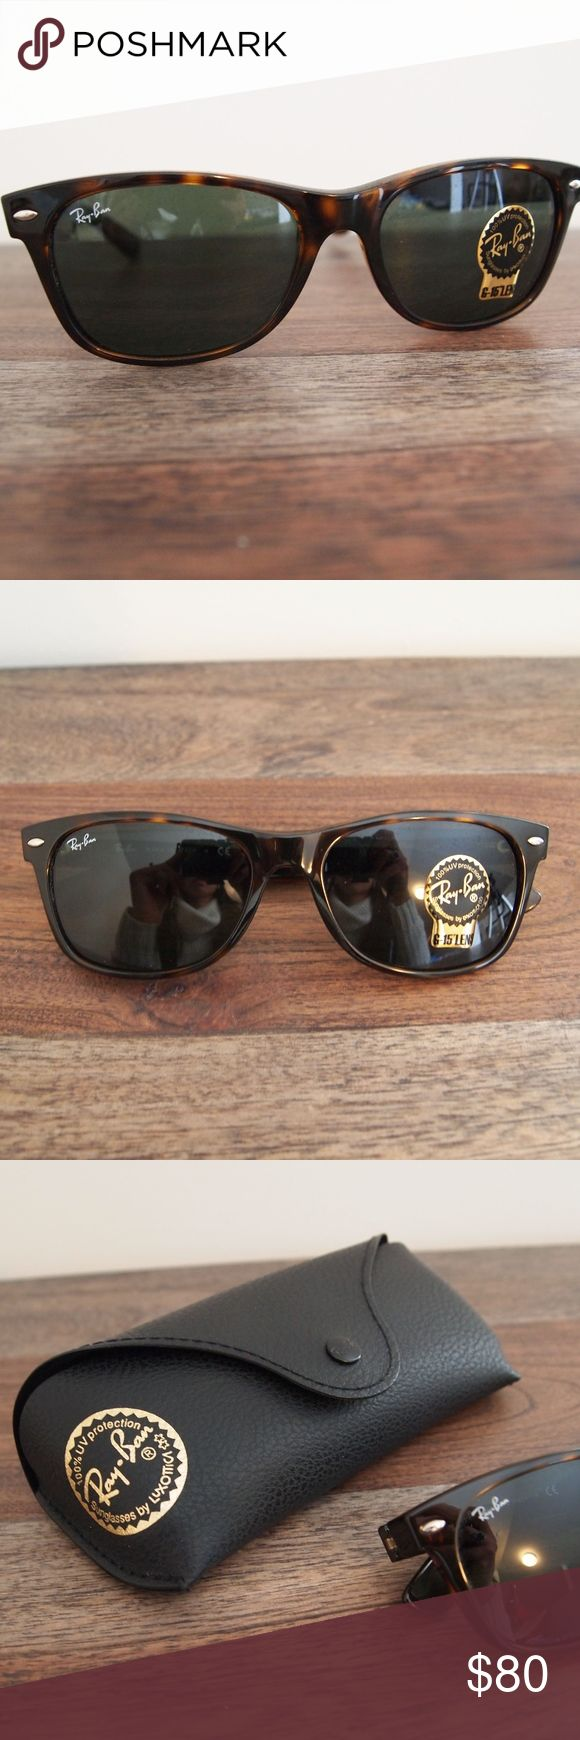 Ray-Ban Wayfarer Sunglasses •	New, with box, Authentic •	Never worn •	RB2132 •	Color: Tortoise/Brown •	Eye/Bridge/Temple Size: 55/18/145  •	Lens Material: glass/plastic •	Comes with/in original box and sunglasses case, with cleaner still in the plastic bag Ray-Ban Accessories Sunglasses